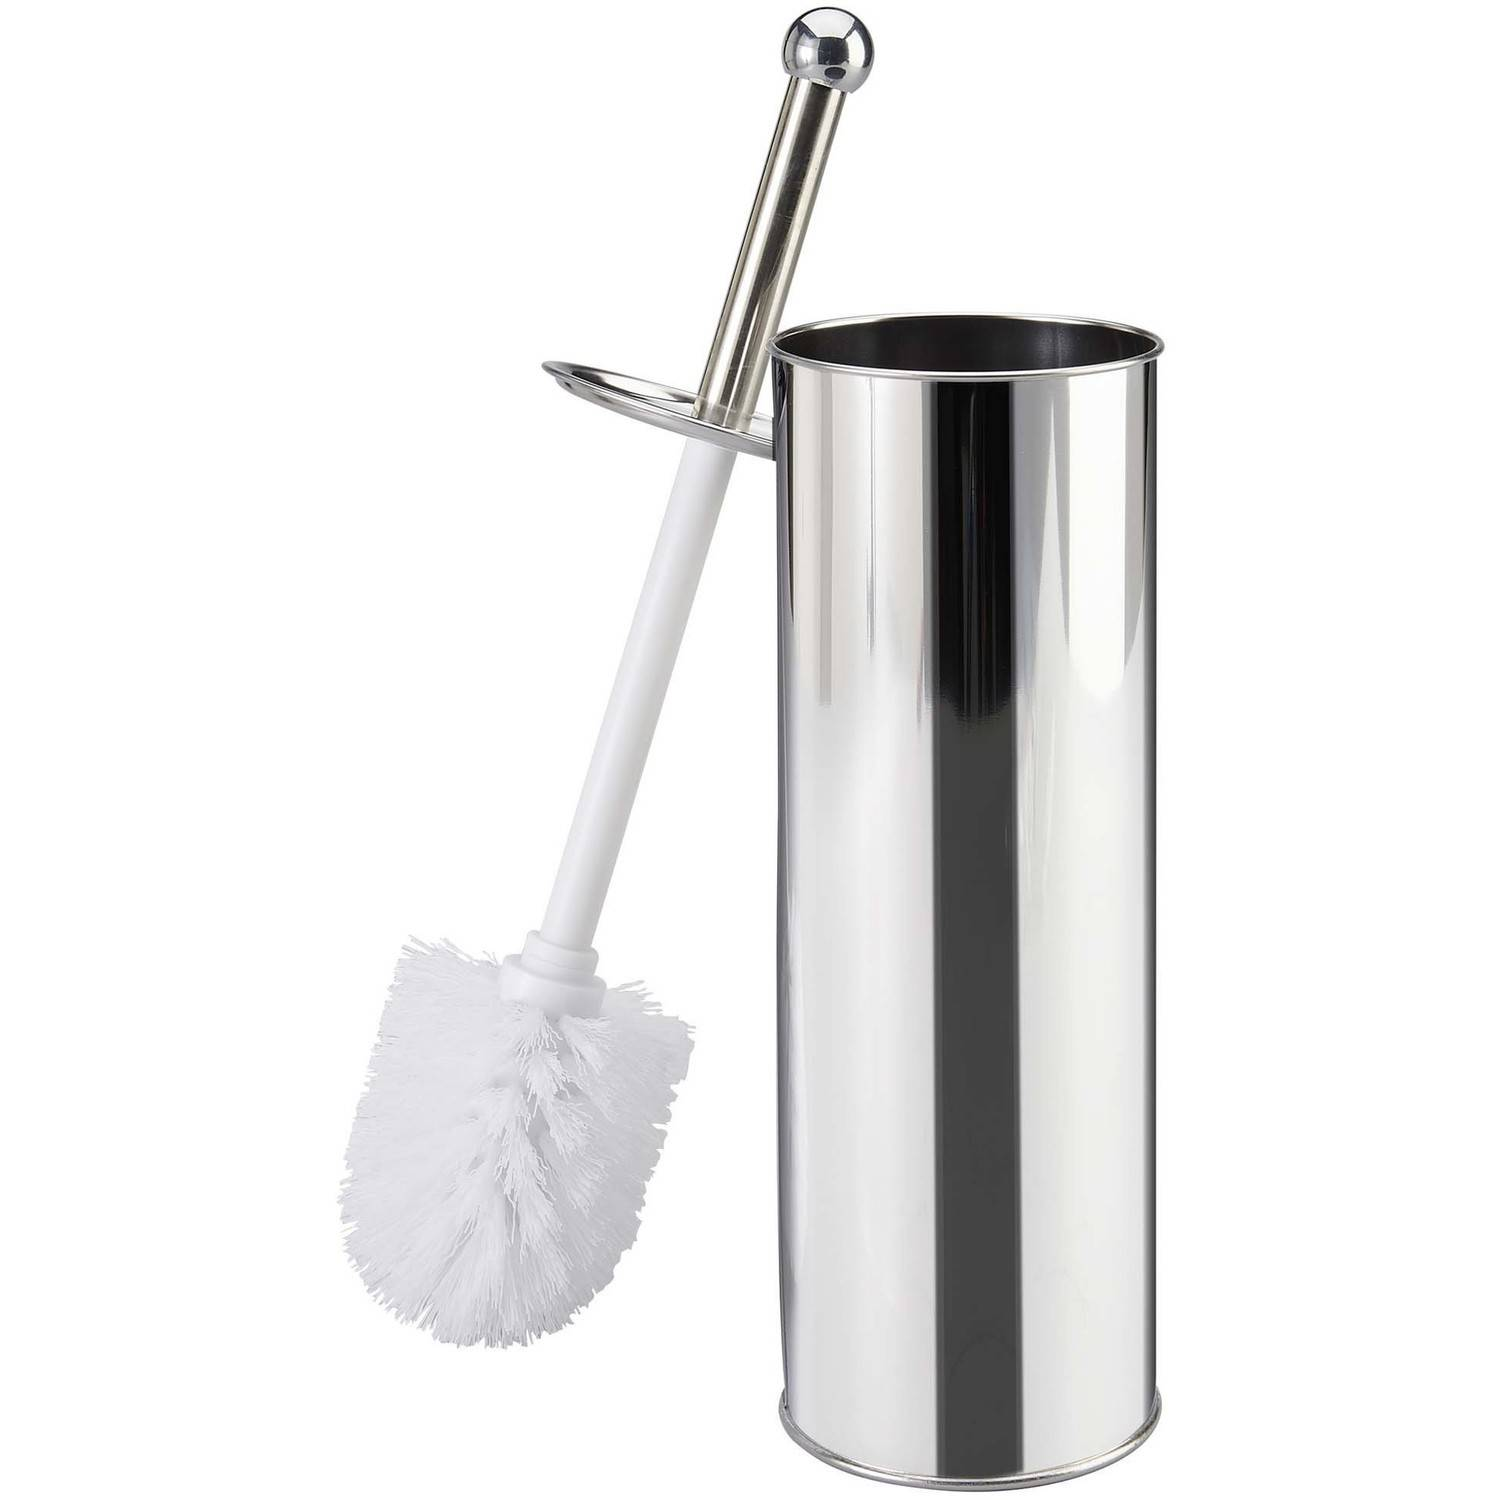 Bath Bliss Toilet Brush Set, Mirror Finish by Kennedy International Inc